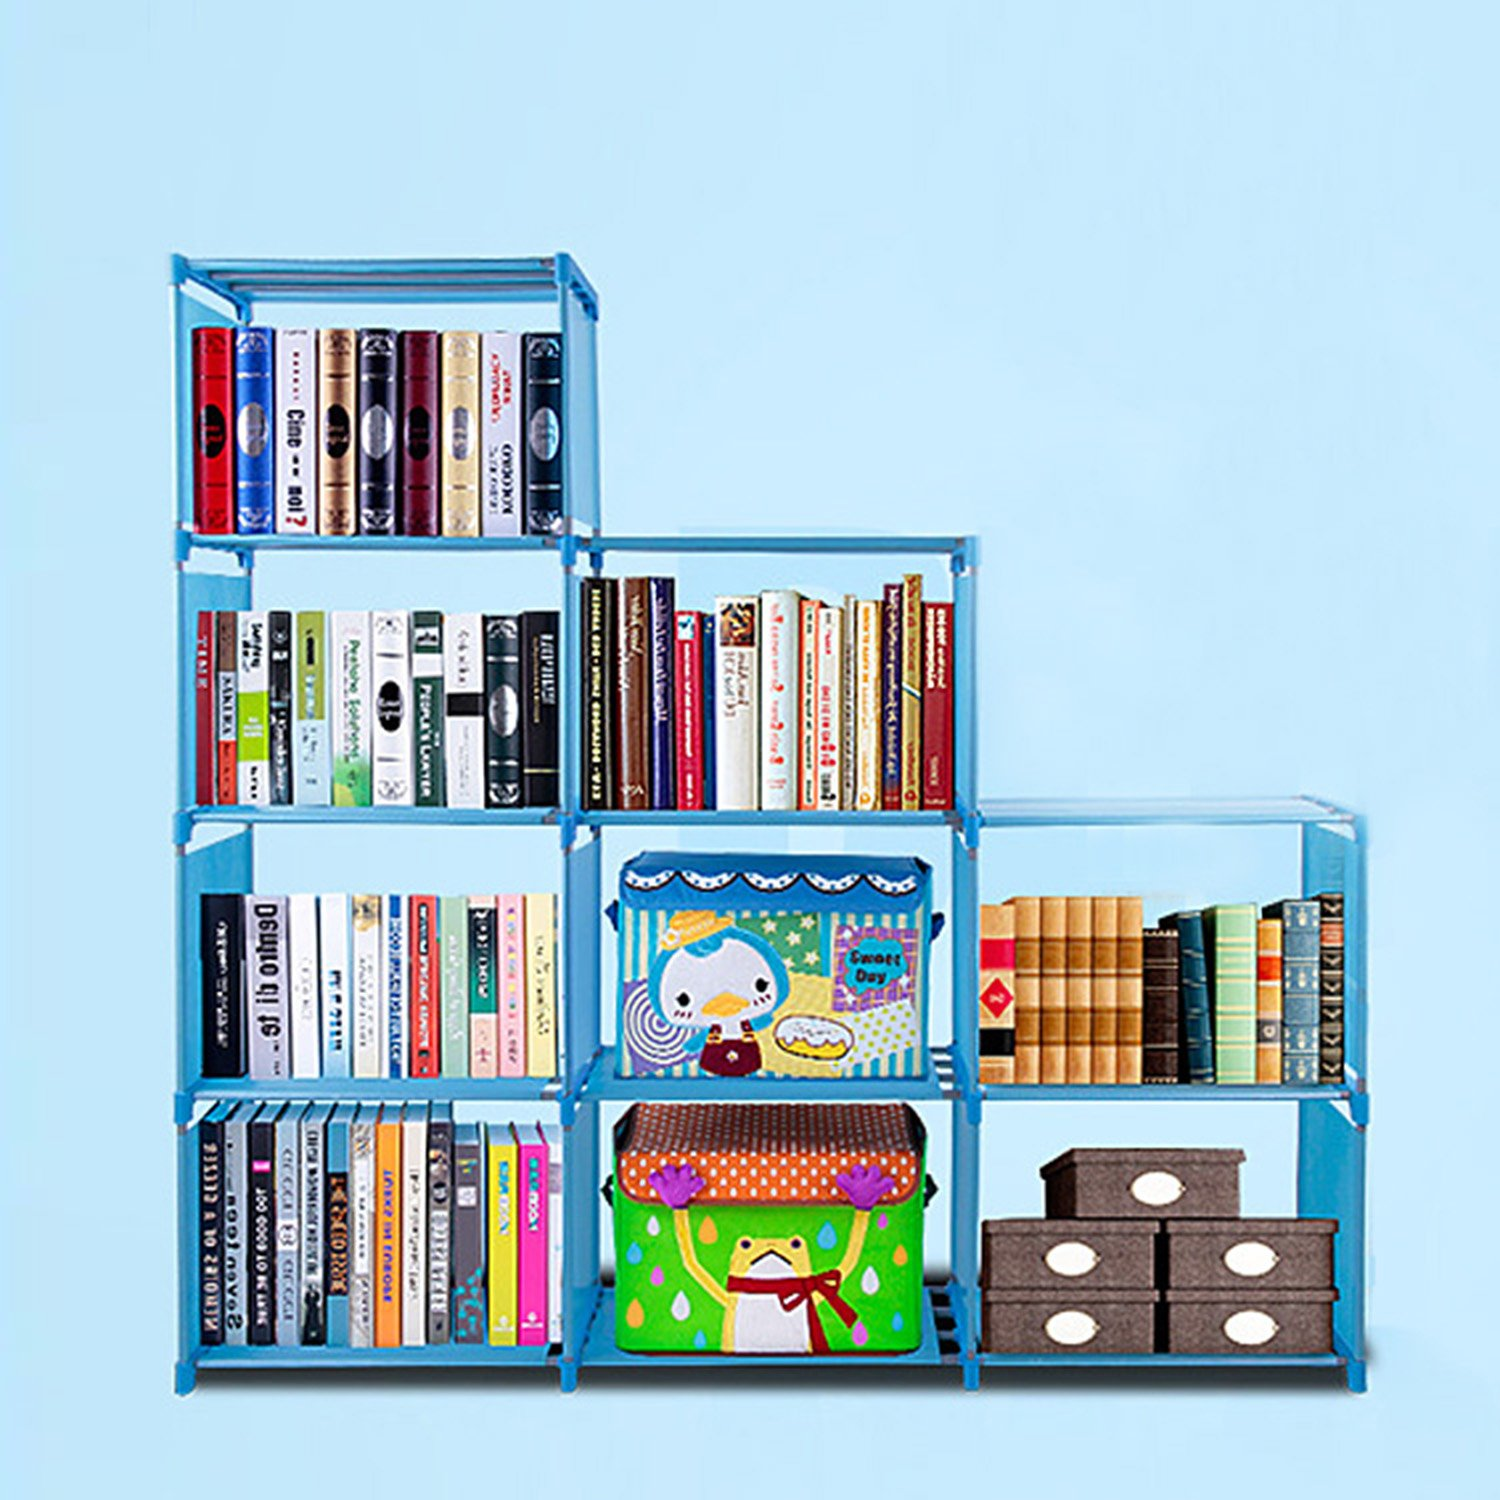 Aceshin 9 Cube Children's Bookcase Adjustable Bookshelf Organizer Closet DIY Cube Storage Shelves Unit (9 Cube, Blue)